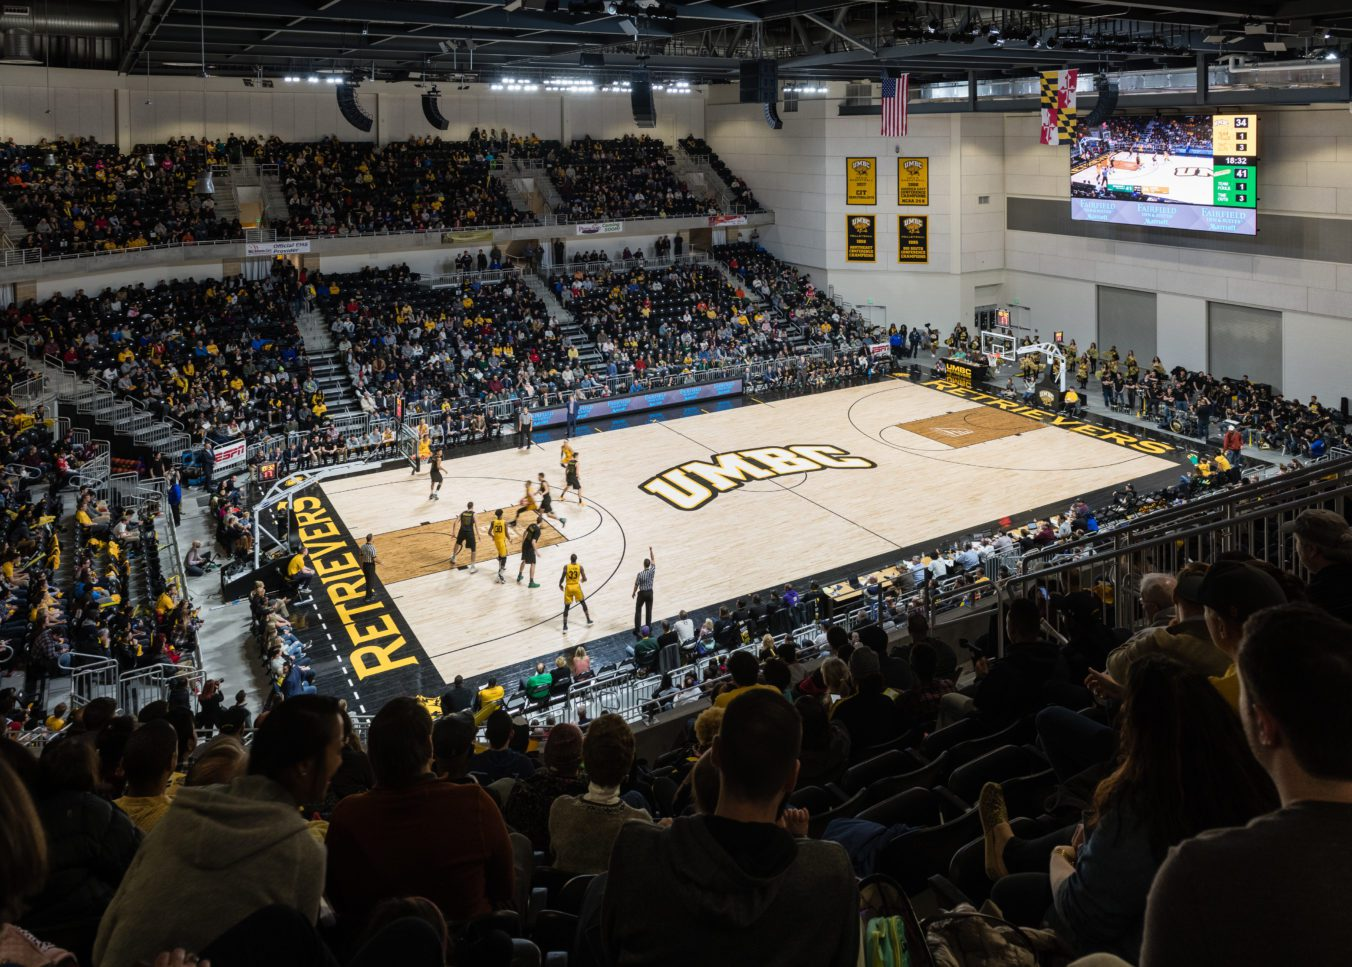 Packed stands cheering on the UMBC Retrievers